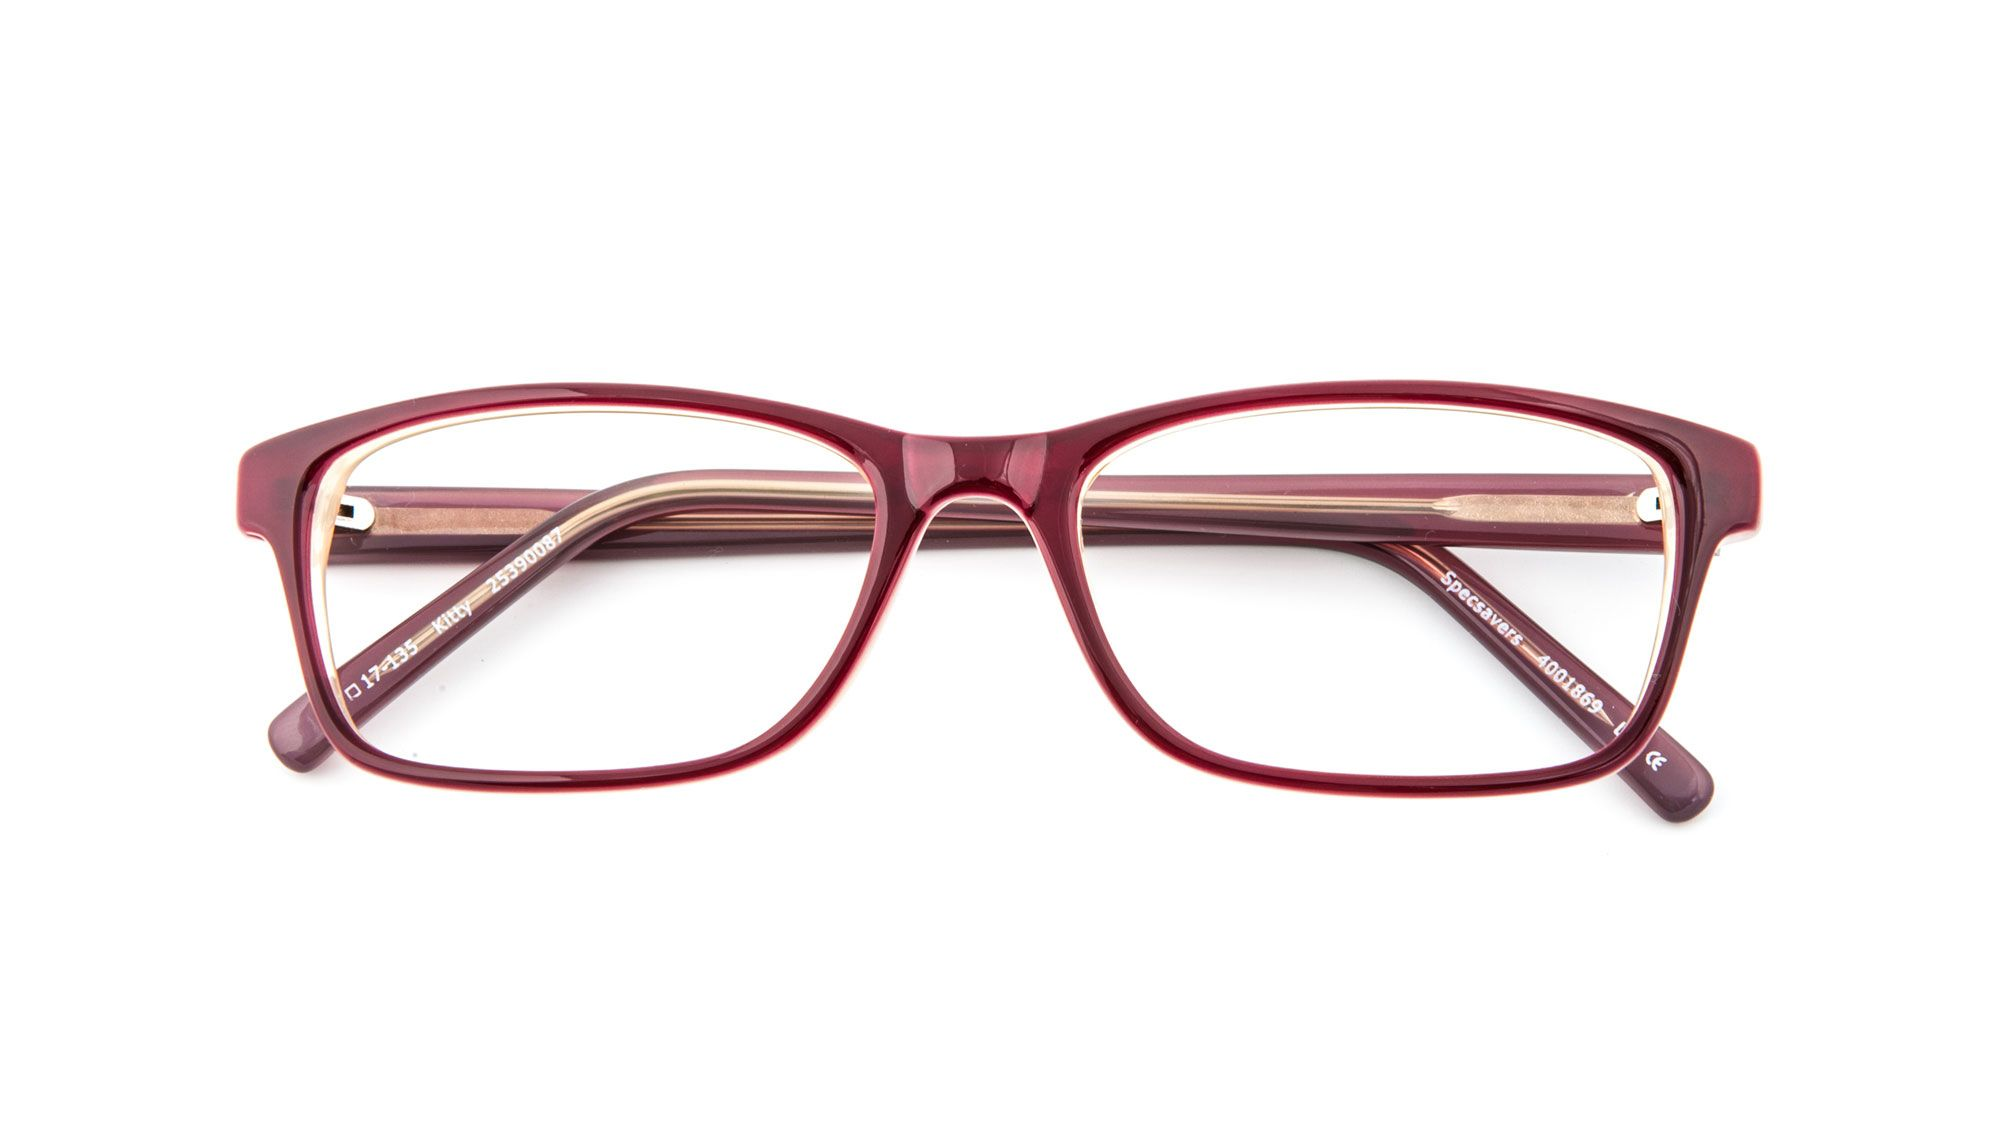 b08a8c0e0b1 KITTY Glasses by Specsavers